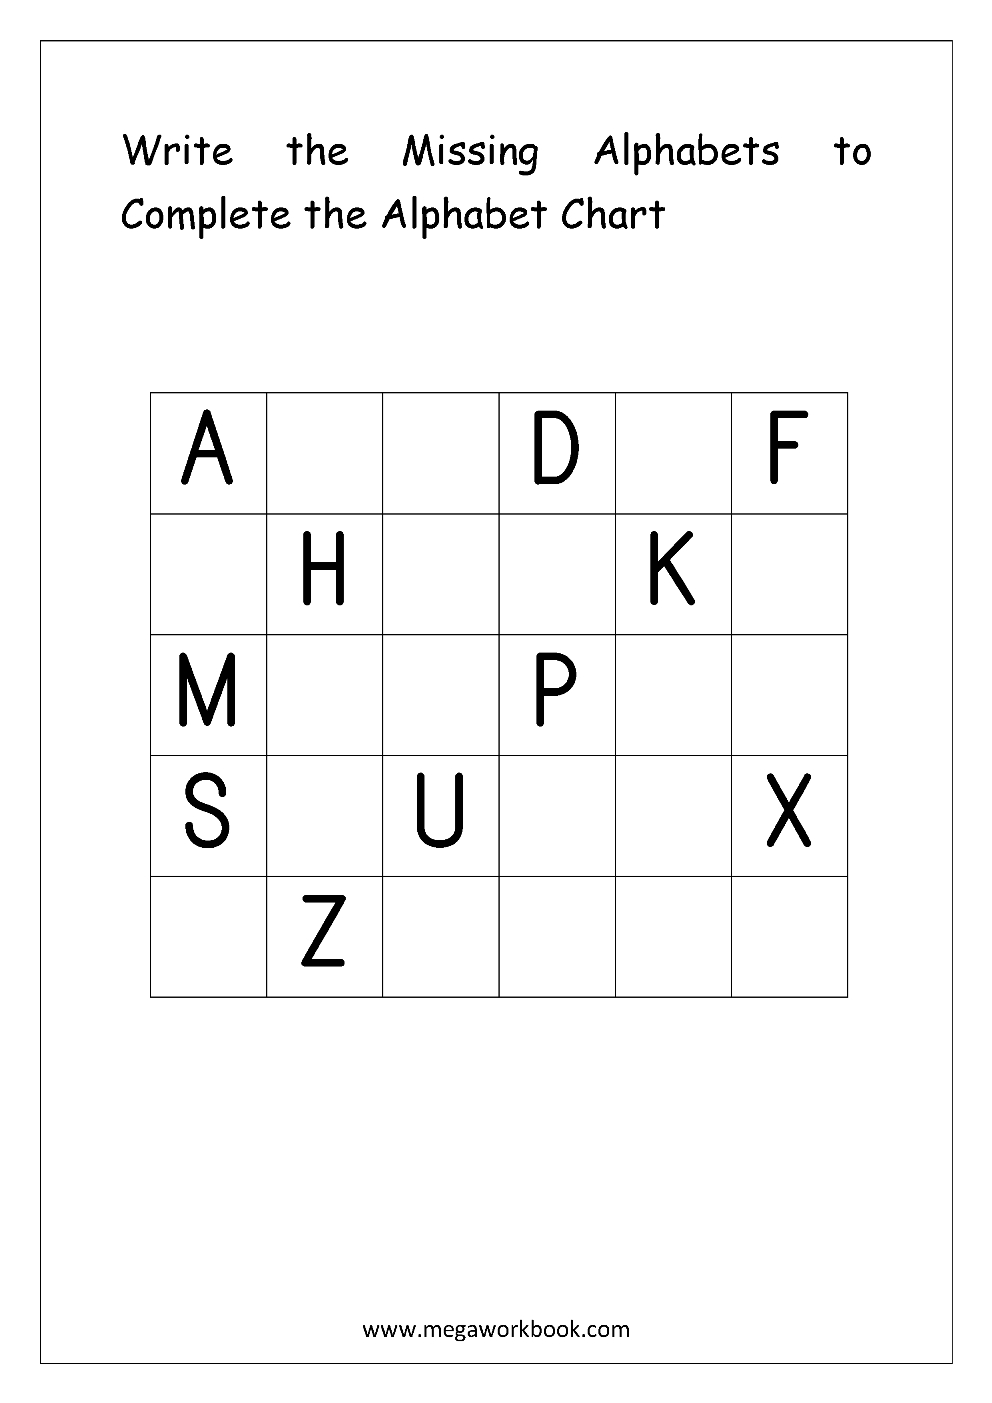 Free English Worksheets - Alphabetical Sequence - Alphabetical Order | Fill In The Missing Letters In Words Printable Worksheets